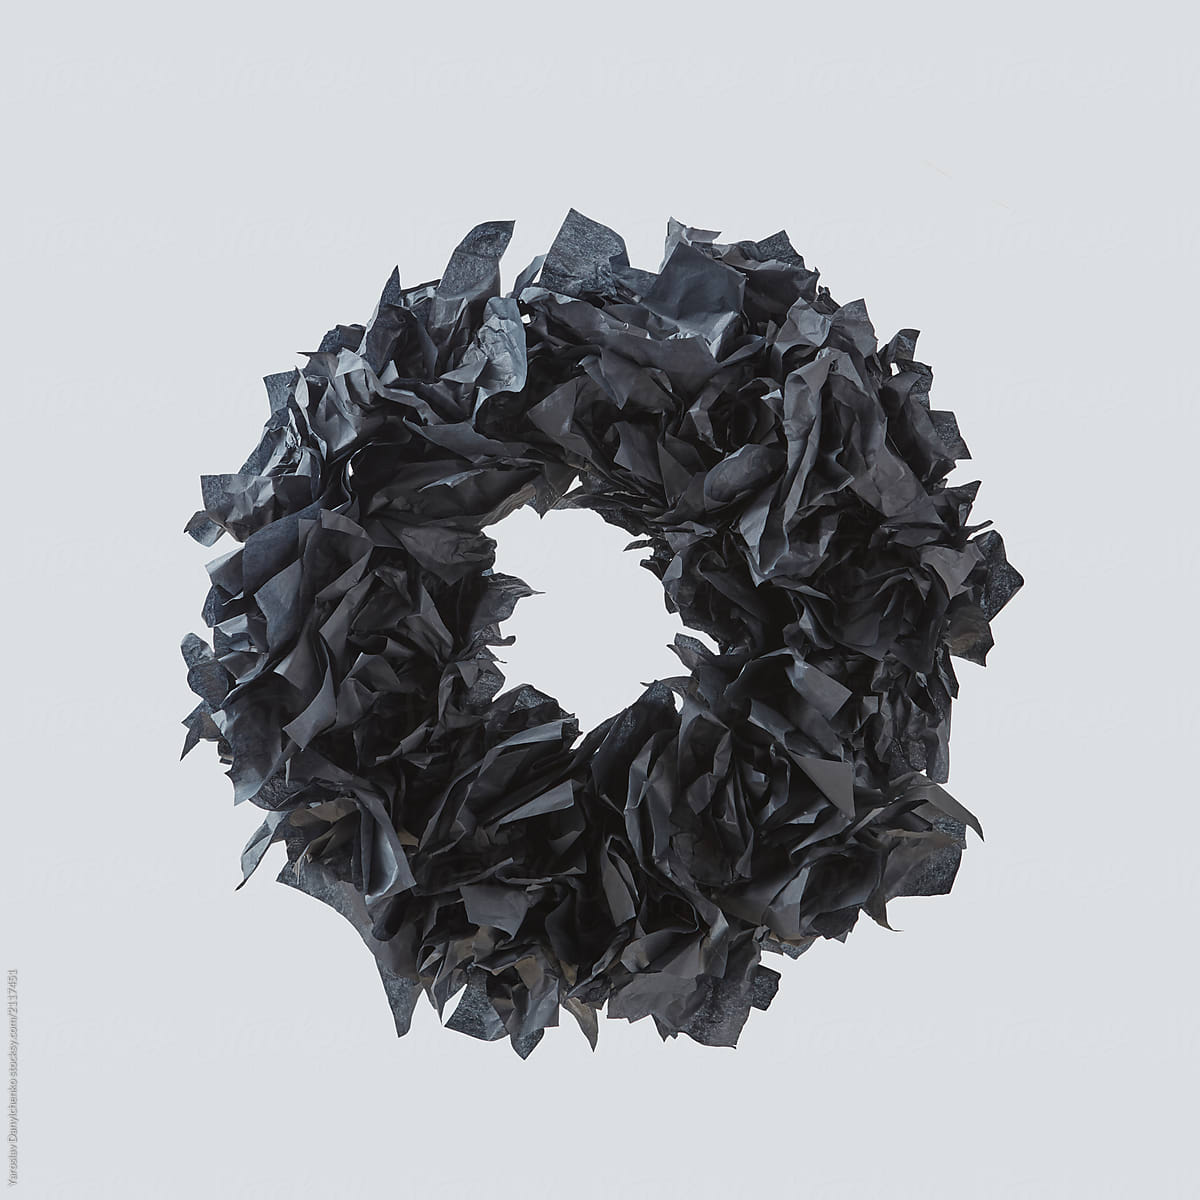 A Decorative Spooky Halloween Wreath Made From Black Paper Isolated On A White By Yaroslav Danylchenko Stocksy United